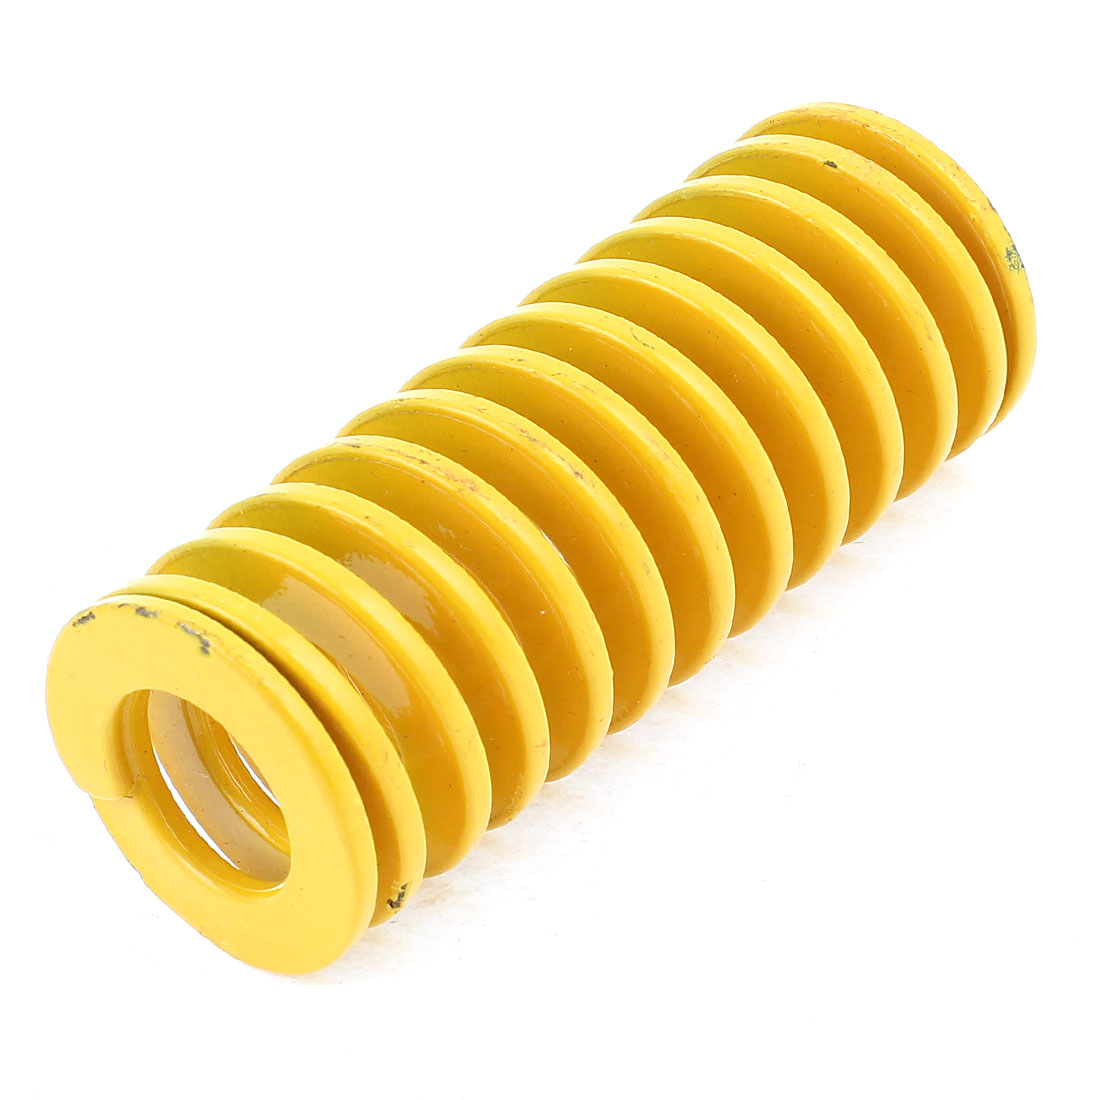 Yellow Alloy Steel Light Load Press Flat Coil Compression Die Spring 30mm x 15mm x 75mm